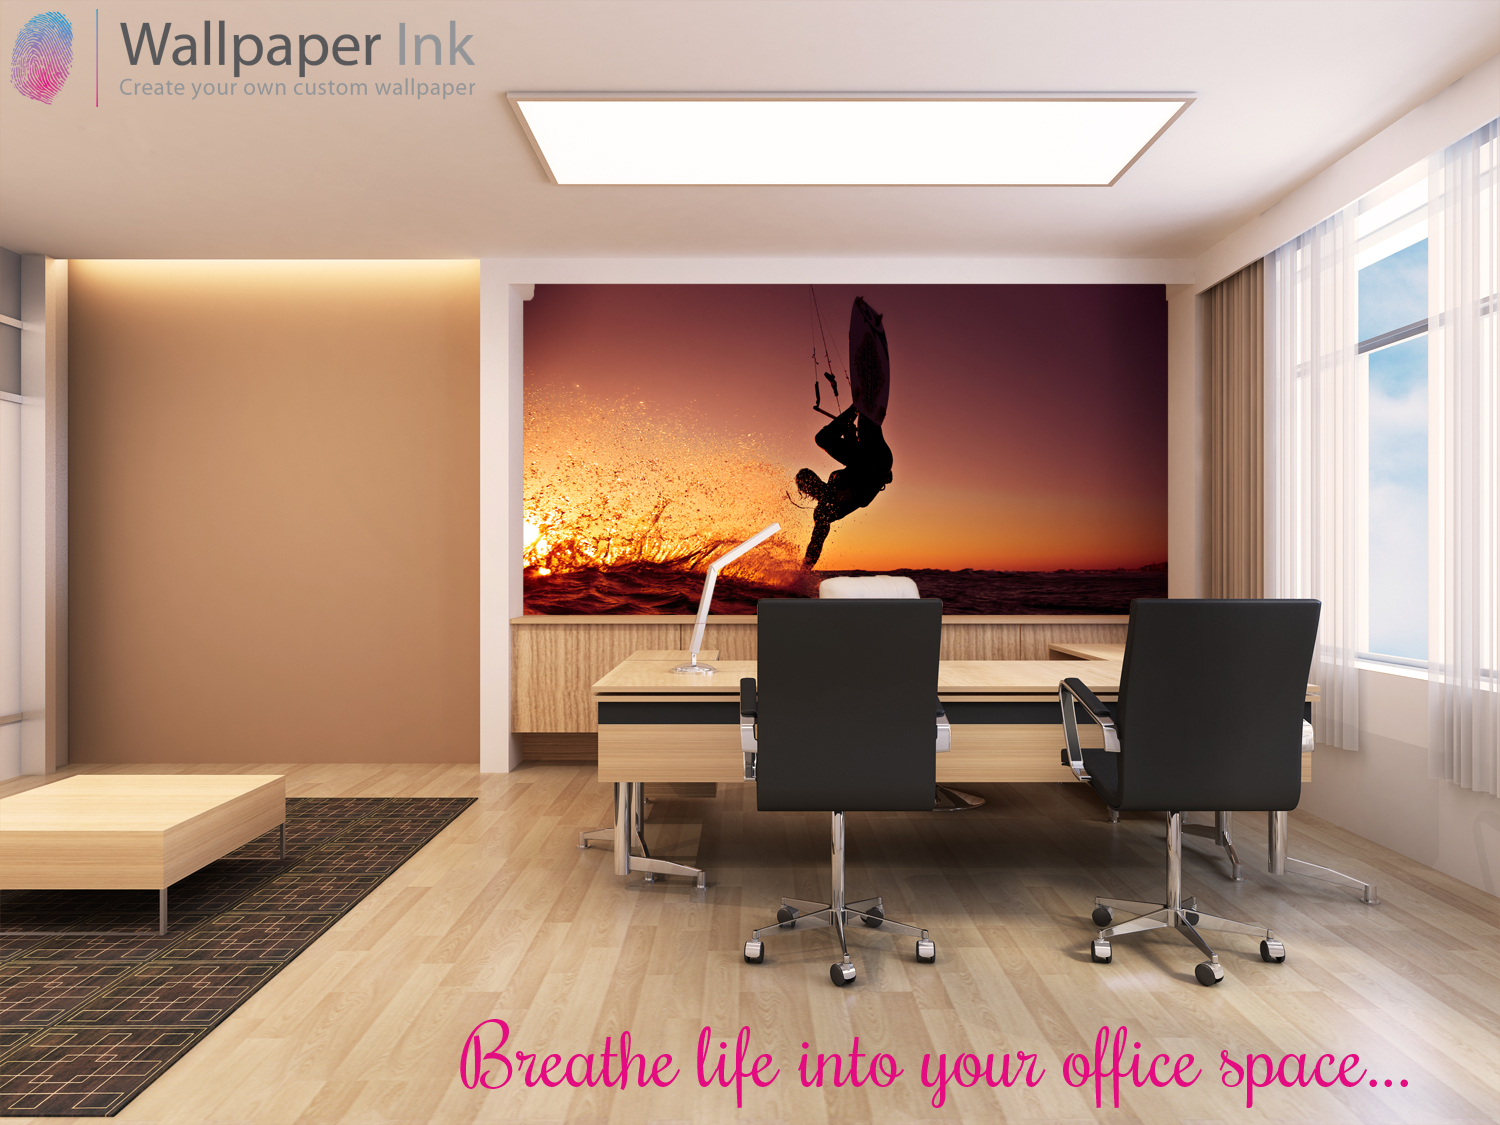 Custom-works-well-in-an-office-environment-too-Add-colour-motivation-and-even-your-compa-wallpaper-wp3004679